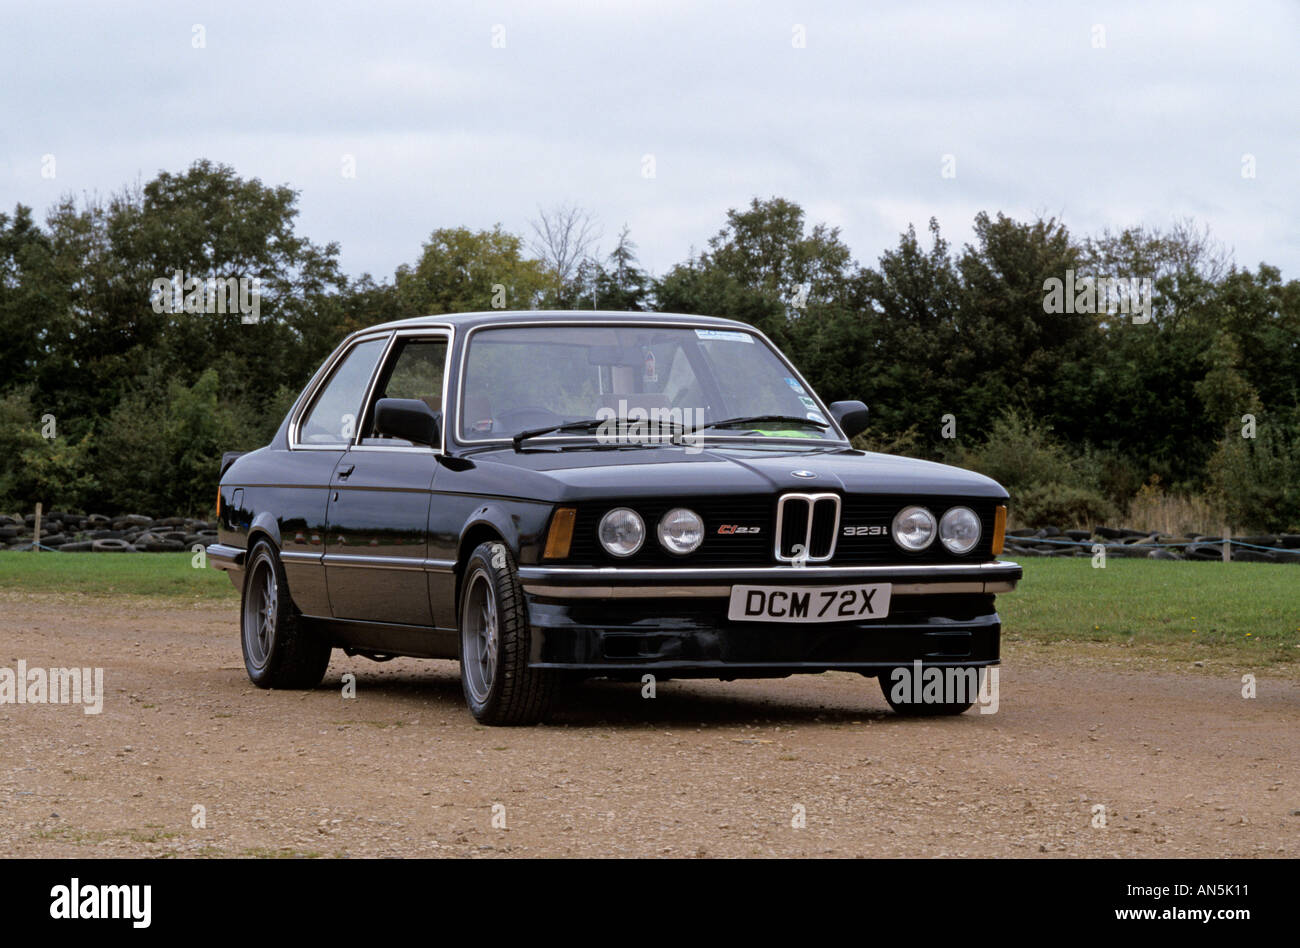 bmw 323i alpina c1 2 point 3 e21 stock photo royalty free. Black Bedroom Furniture Sets. Home Design Ideas